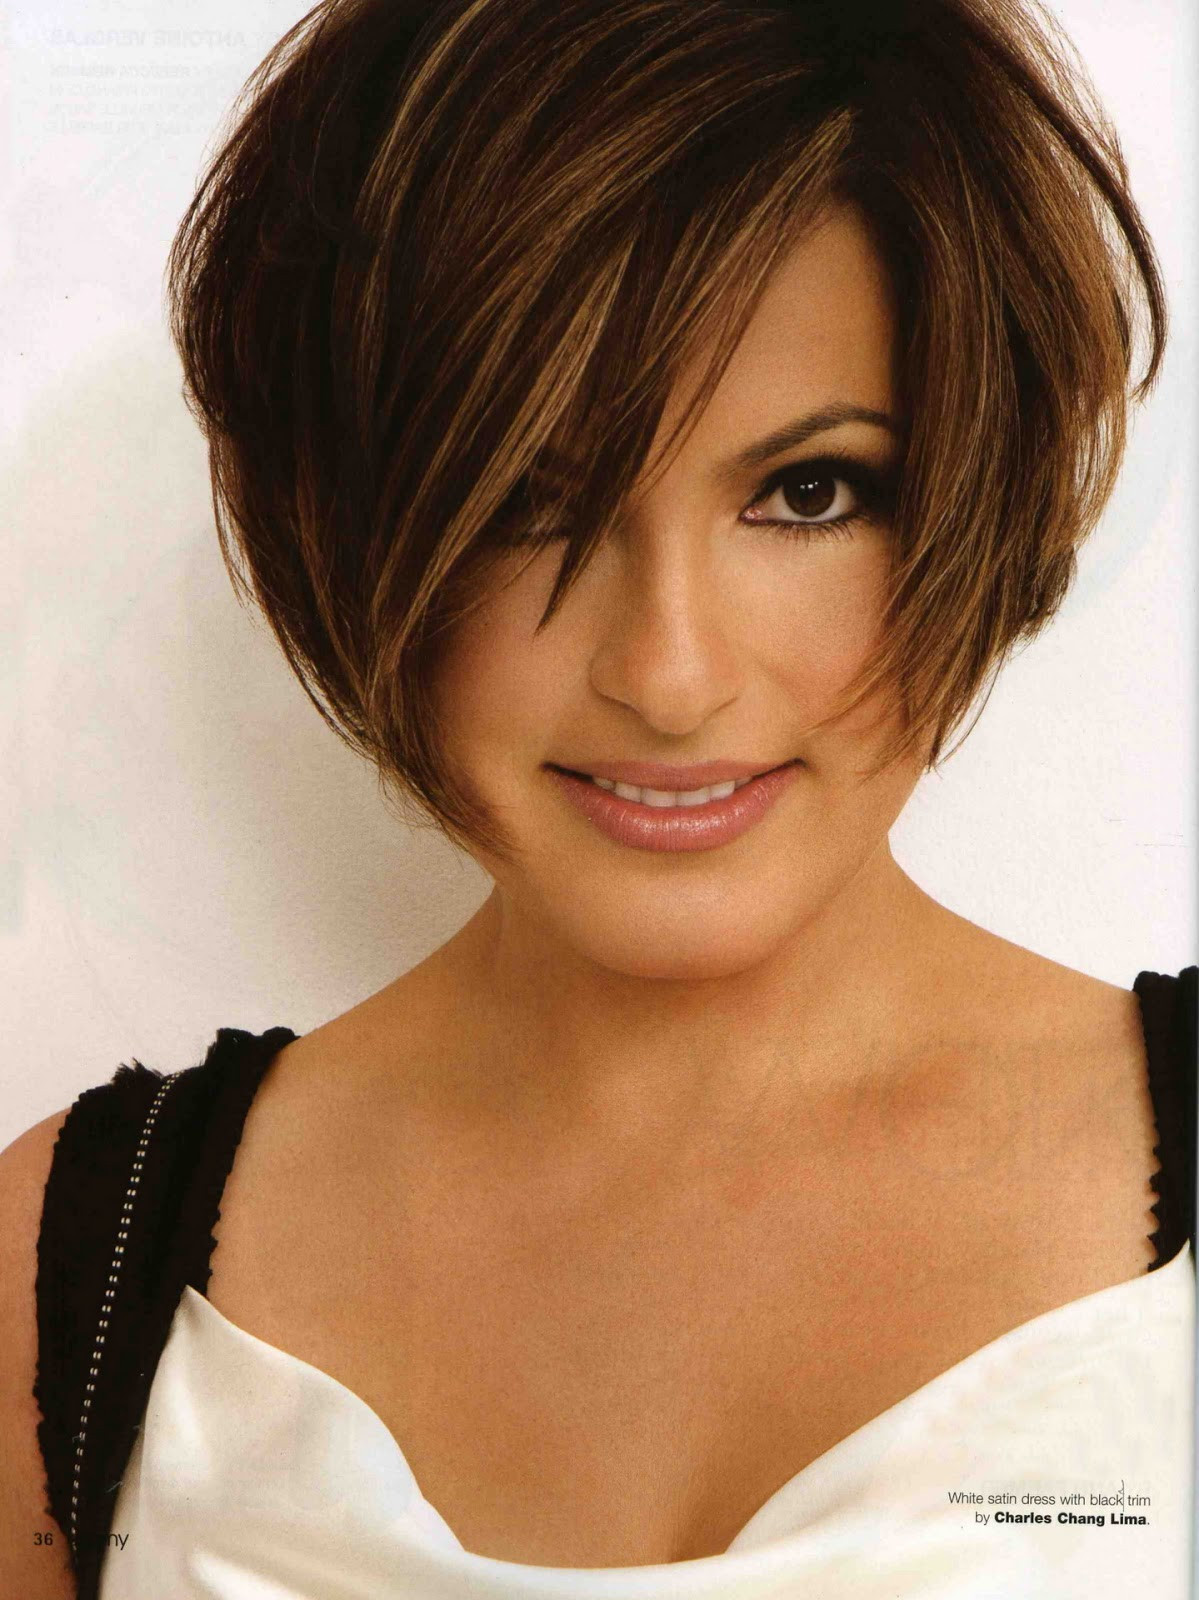 Best ideas about Mariska Hargitay Short Hairstyles . Save or Pin 1199x1600 source mirror Now.